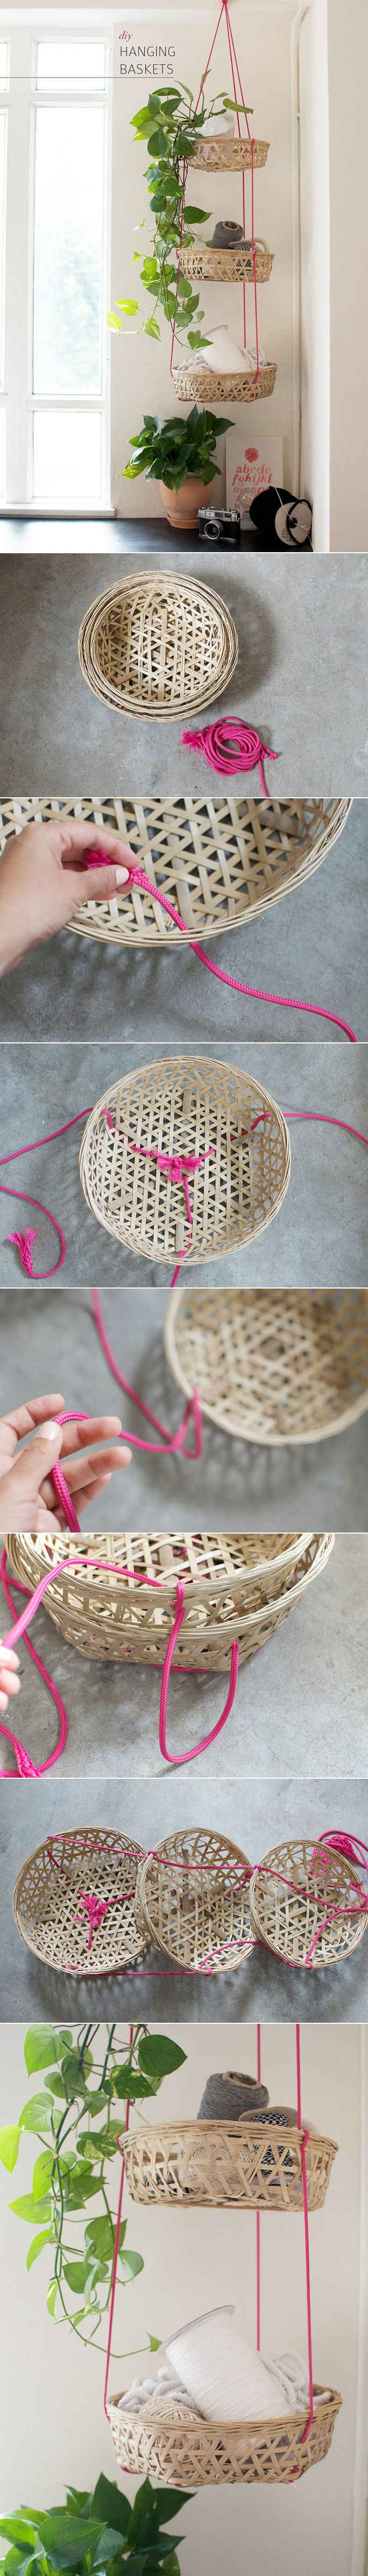 DIY - HANGING BASKETS ( CLICK THROUGH FOR TUTORIAL ) >> YOU WILL NEED : 3 BAMBOO BASKETS, IT'S BEST IF THEY ARE TIERED IN SIZE (I.E. FIT INSIDE EACH OTHER LIKE RUSSIAN DOLLS) , ROPE (I WENT WITH DARK PINK ROPE TO ADD A BIT OF COLOUR TO THE DESIGN.)